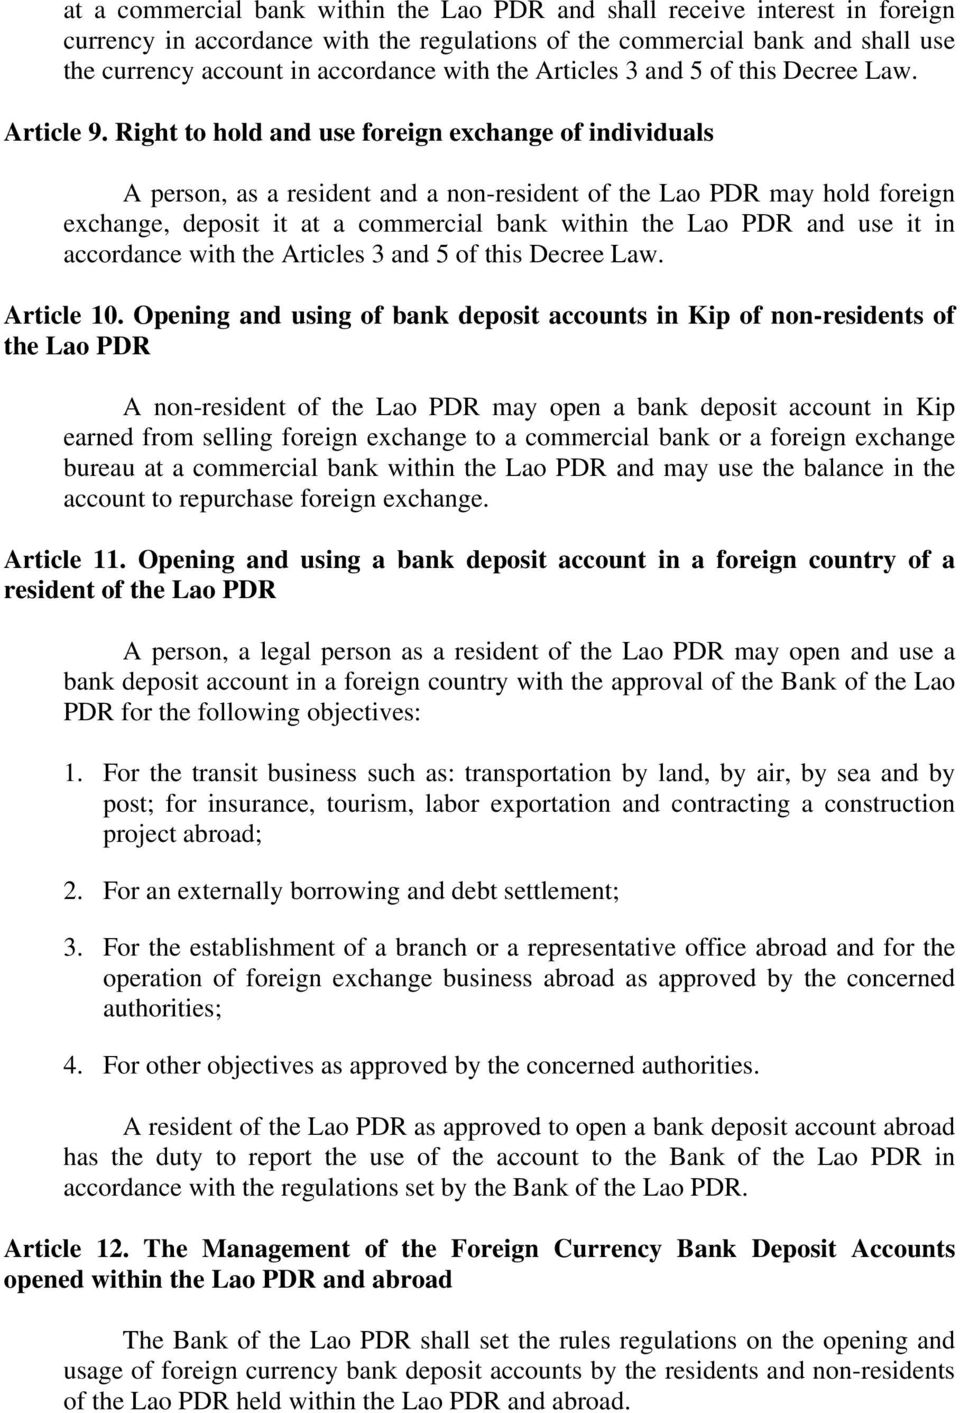 Right to hold and use foreign exchange of individuals A person, as a resident and a non-resident of the Lao PDR may hold foreign exchange, deposit it at a commercial bank within the Lao PDR and use